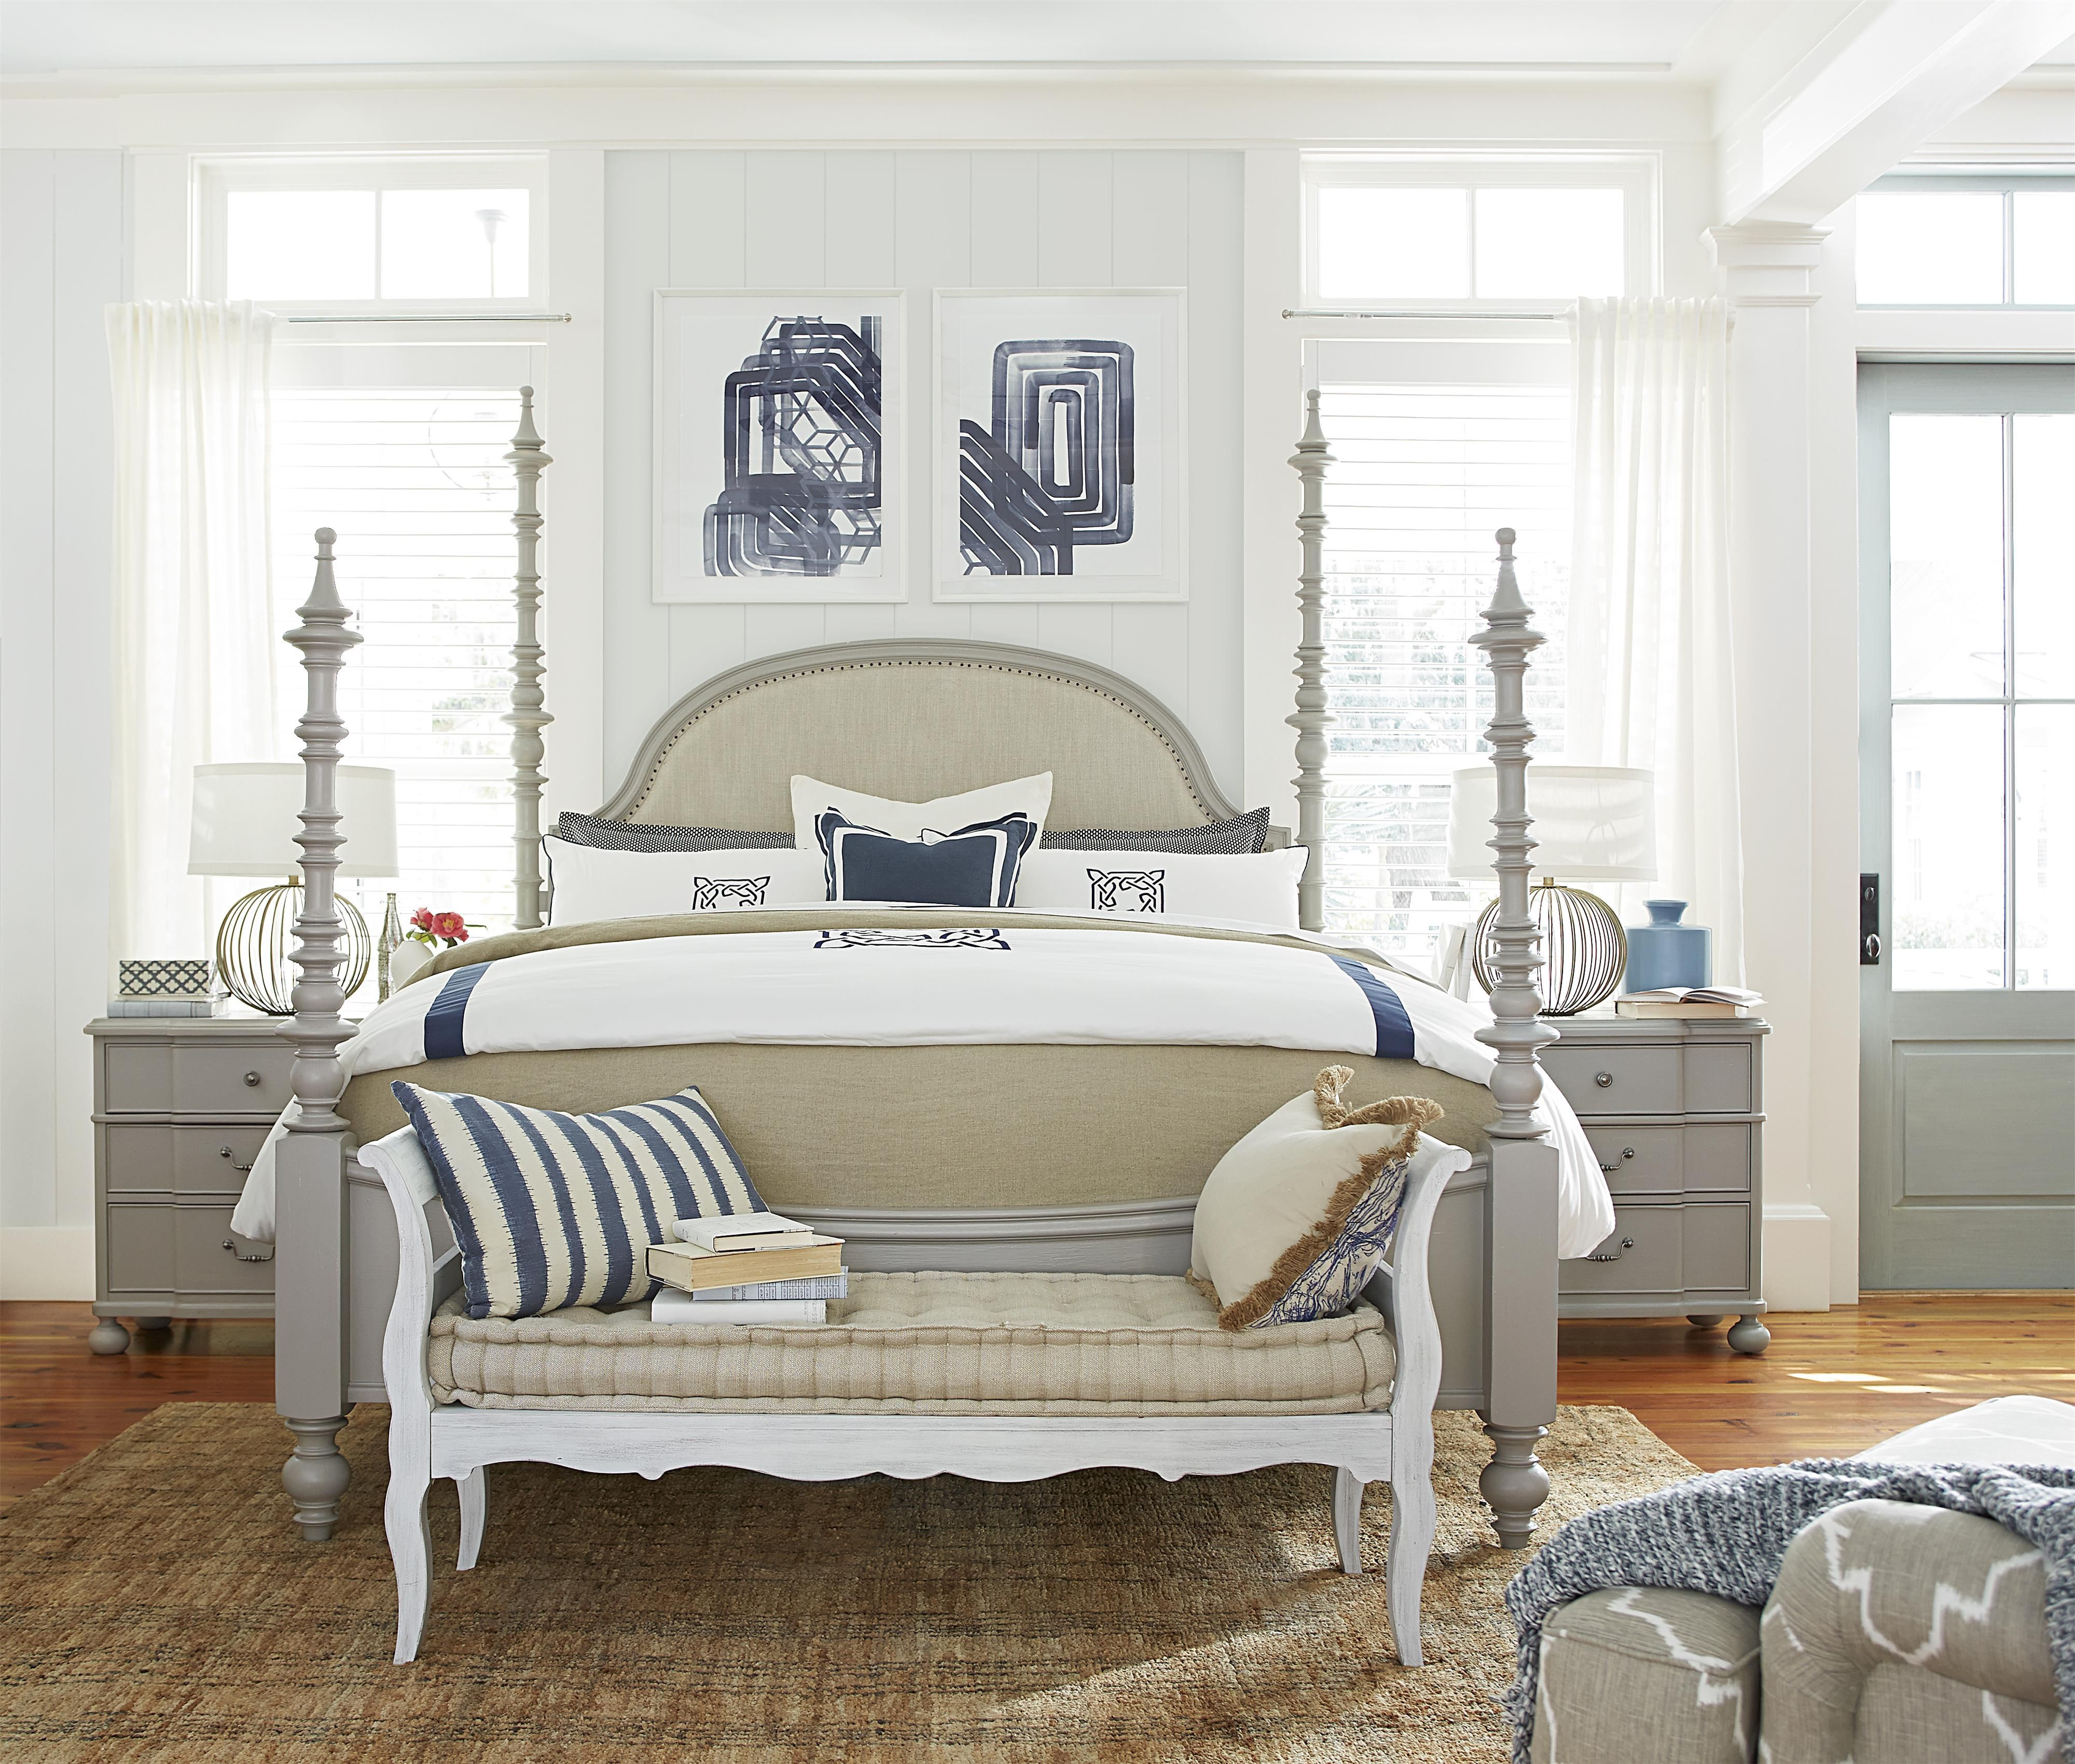 Dogwood Queen Bedroom Group by Paula Deen by Universal